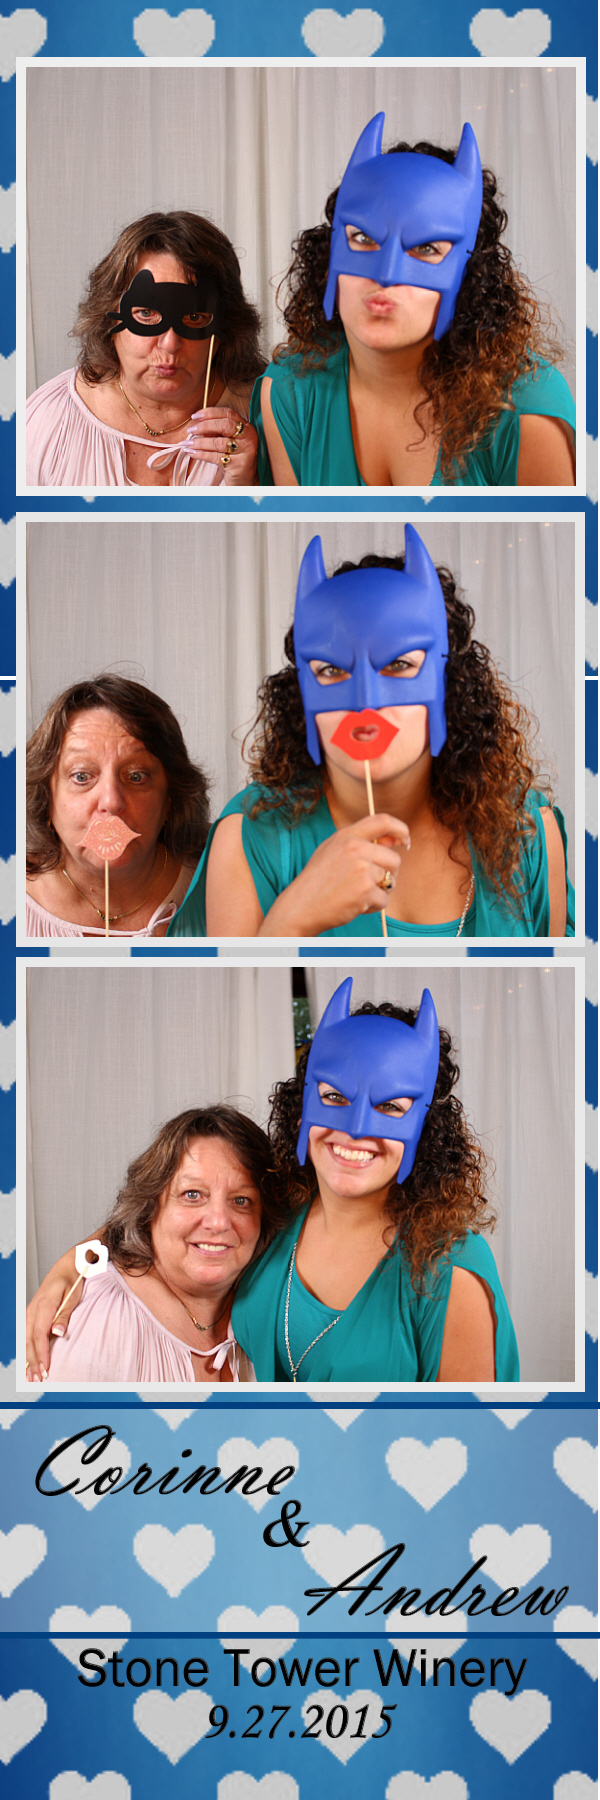 Guest House Events Photo Booth C&A (7).jpg